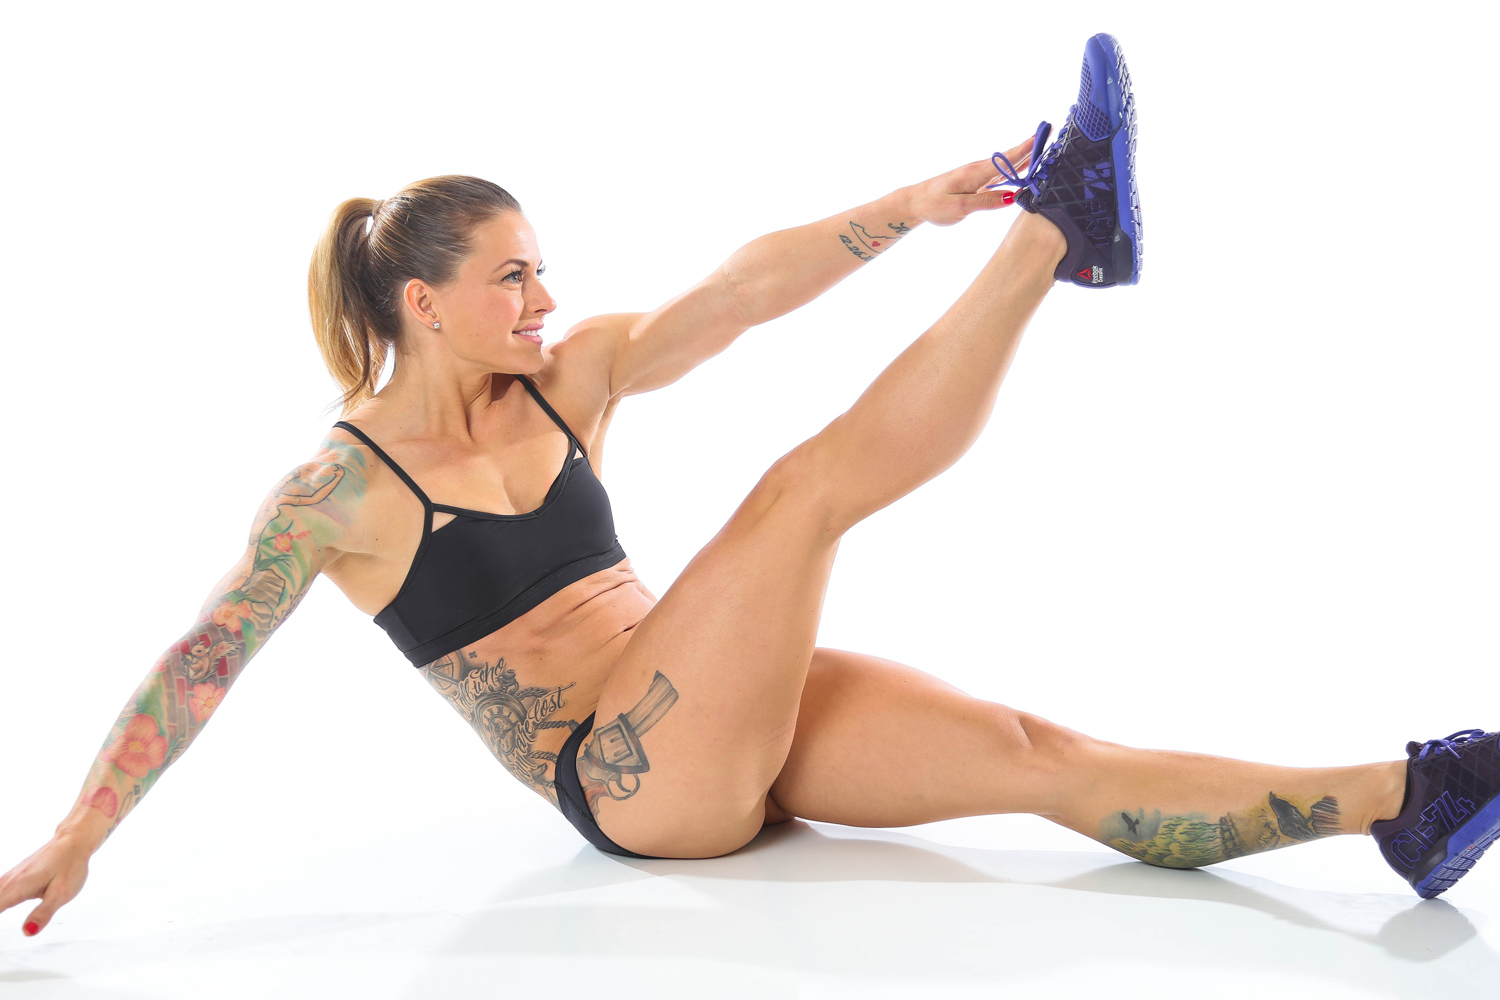 From The Badass Body Diet, by Christmas Abbott: Single Leg Toe Touch, Part 2